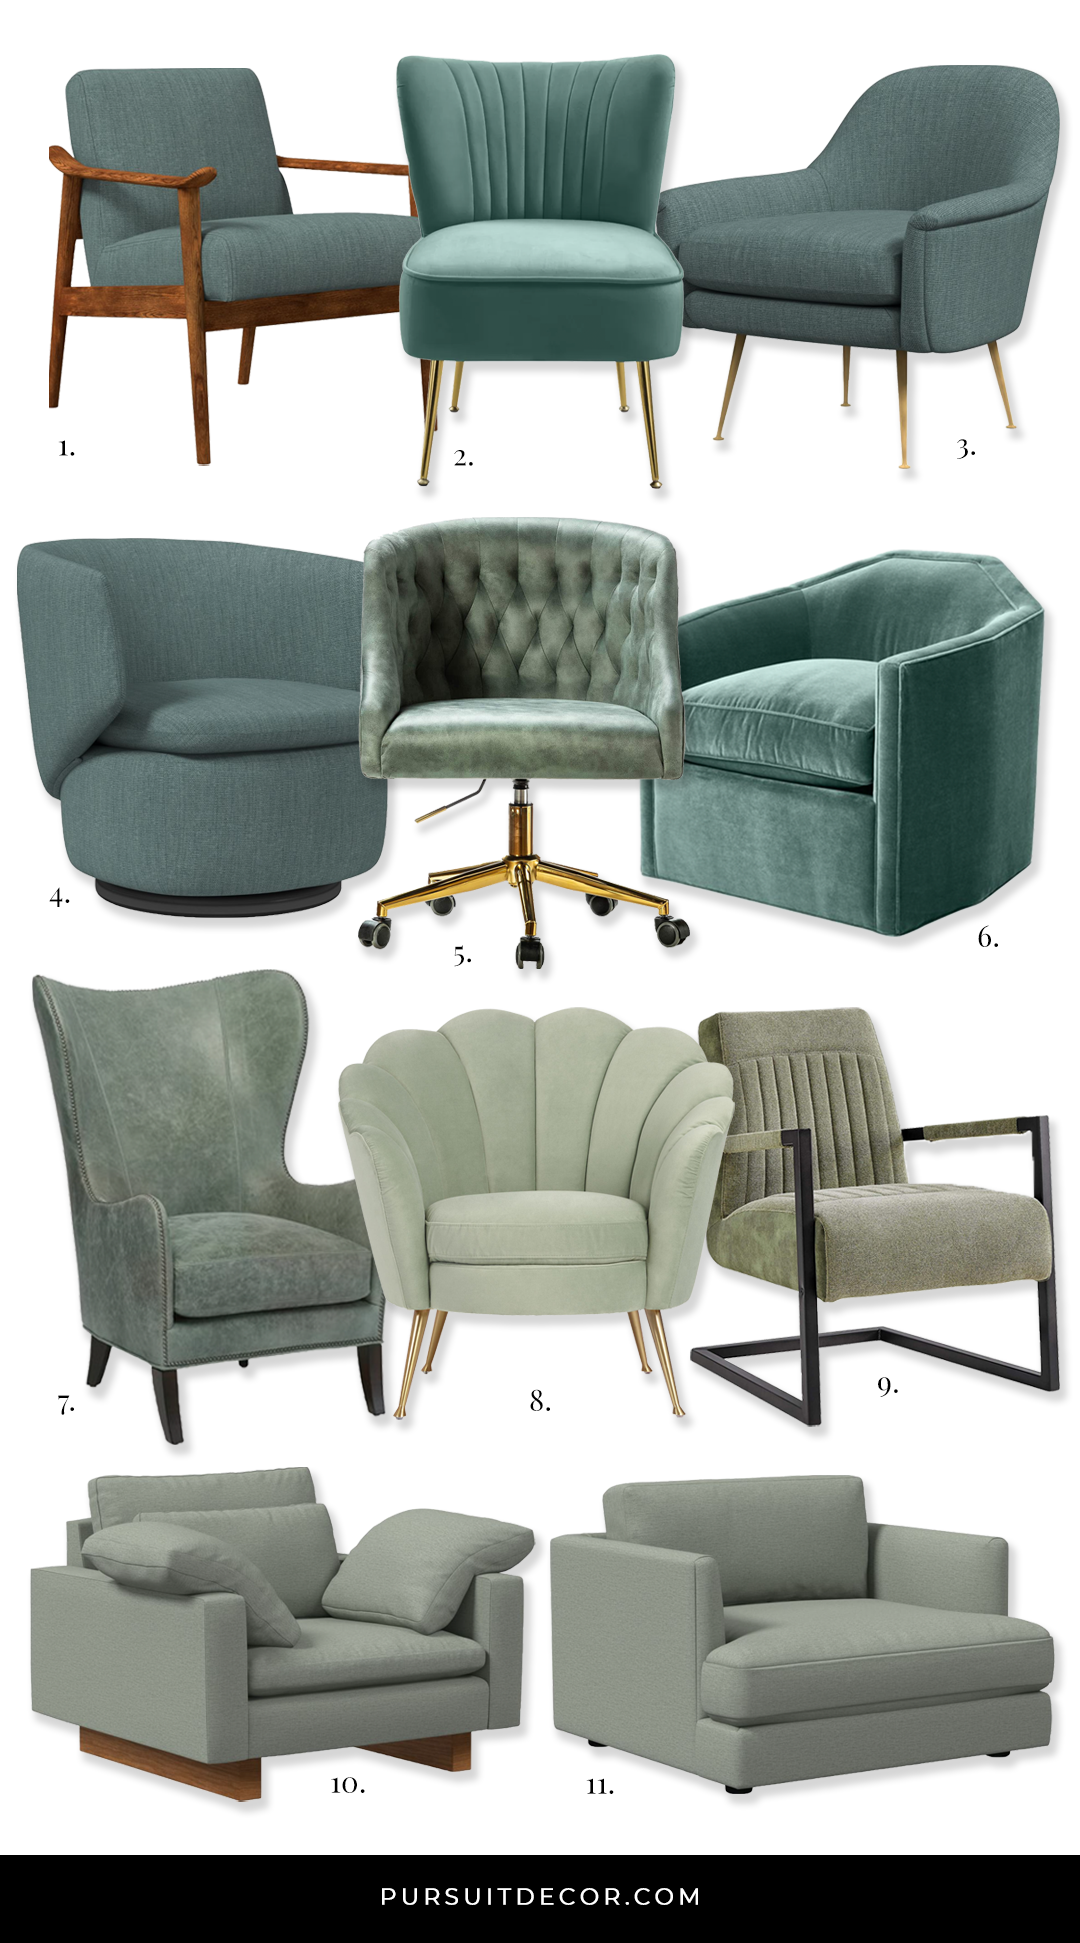 Stylish Sage Green Accent Chair Options - features chairs from West Elm, Wayfair, Anthropologie, Amazon, Cost Plus World Market and One Kings Lane